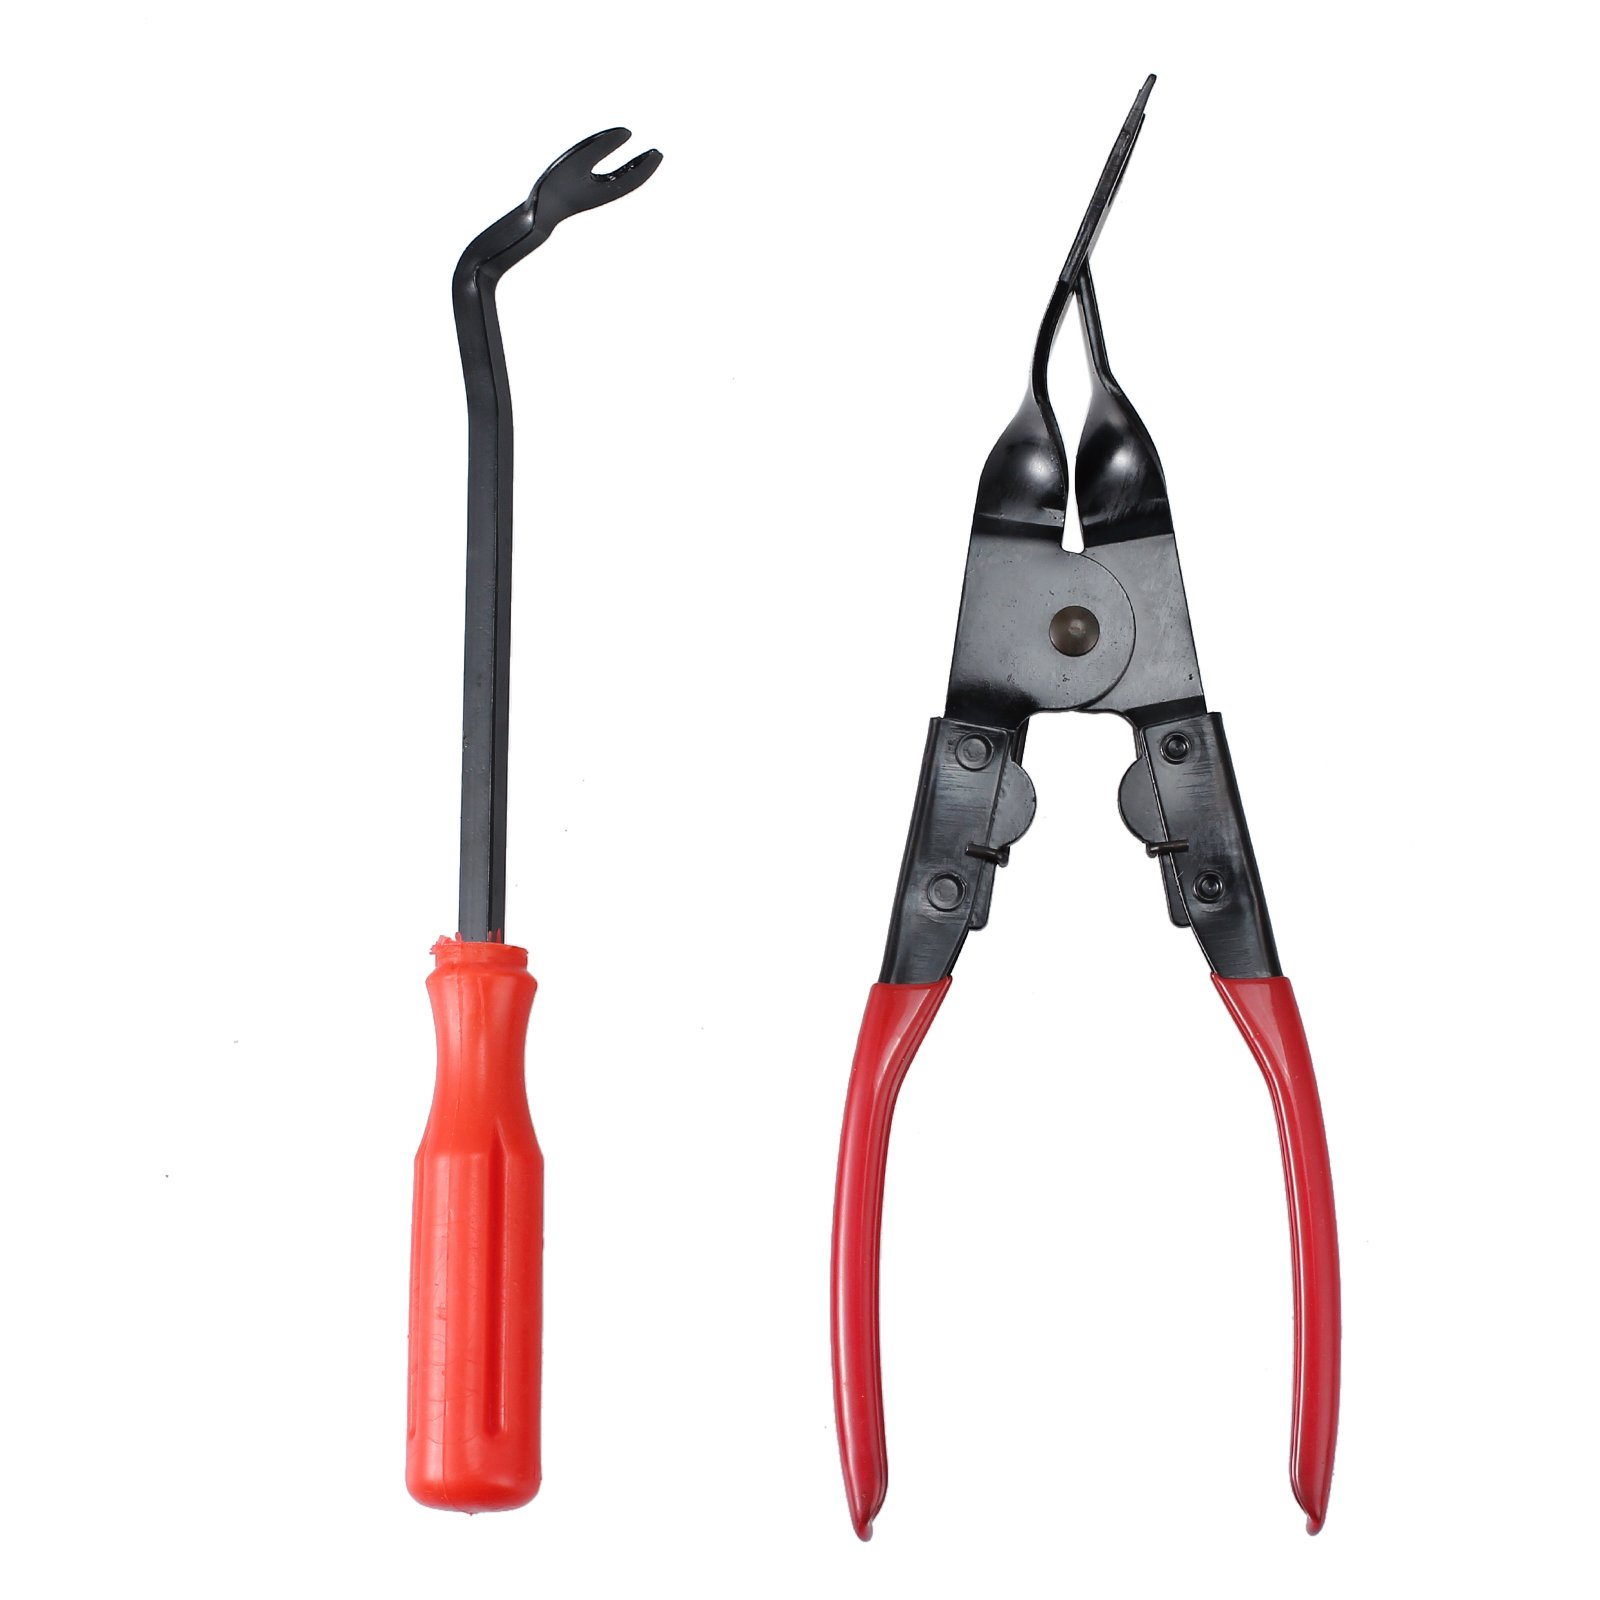 ESYNIC Universal Car Door Panel Trim Clip Removal Plier Upholstery Remover Pry Bar Tool Kit